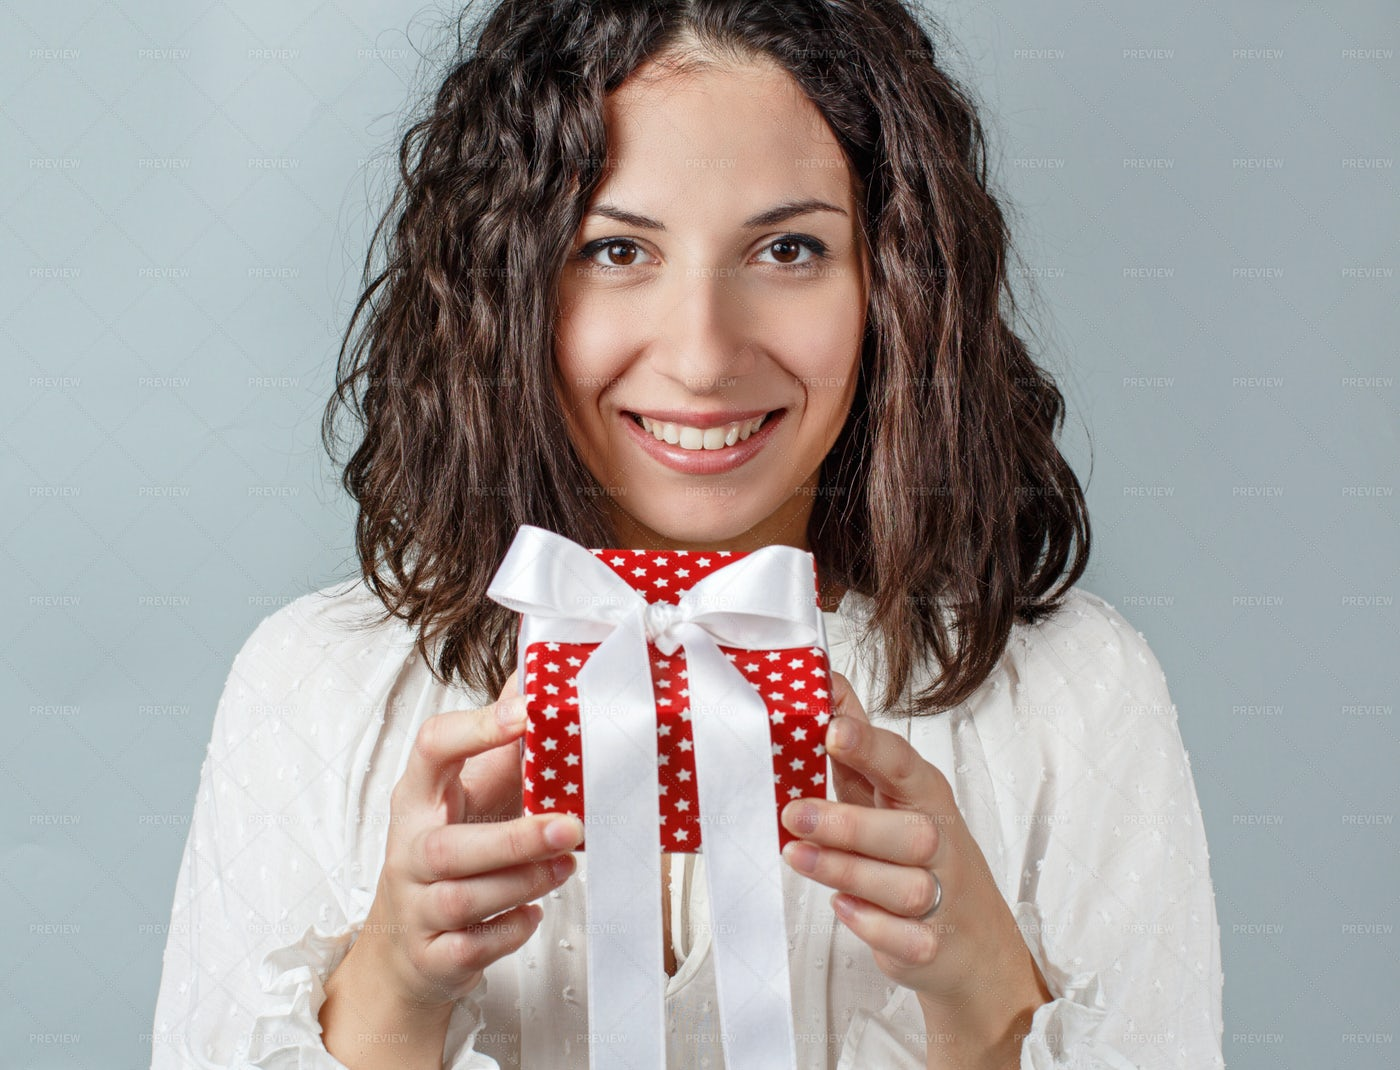 Young Woman Holding Present: Stock Photos